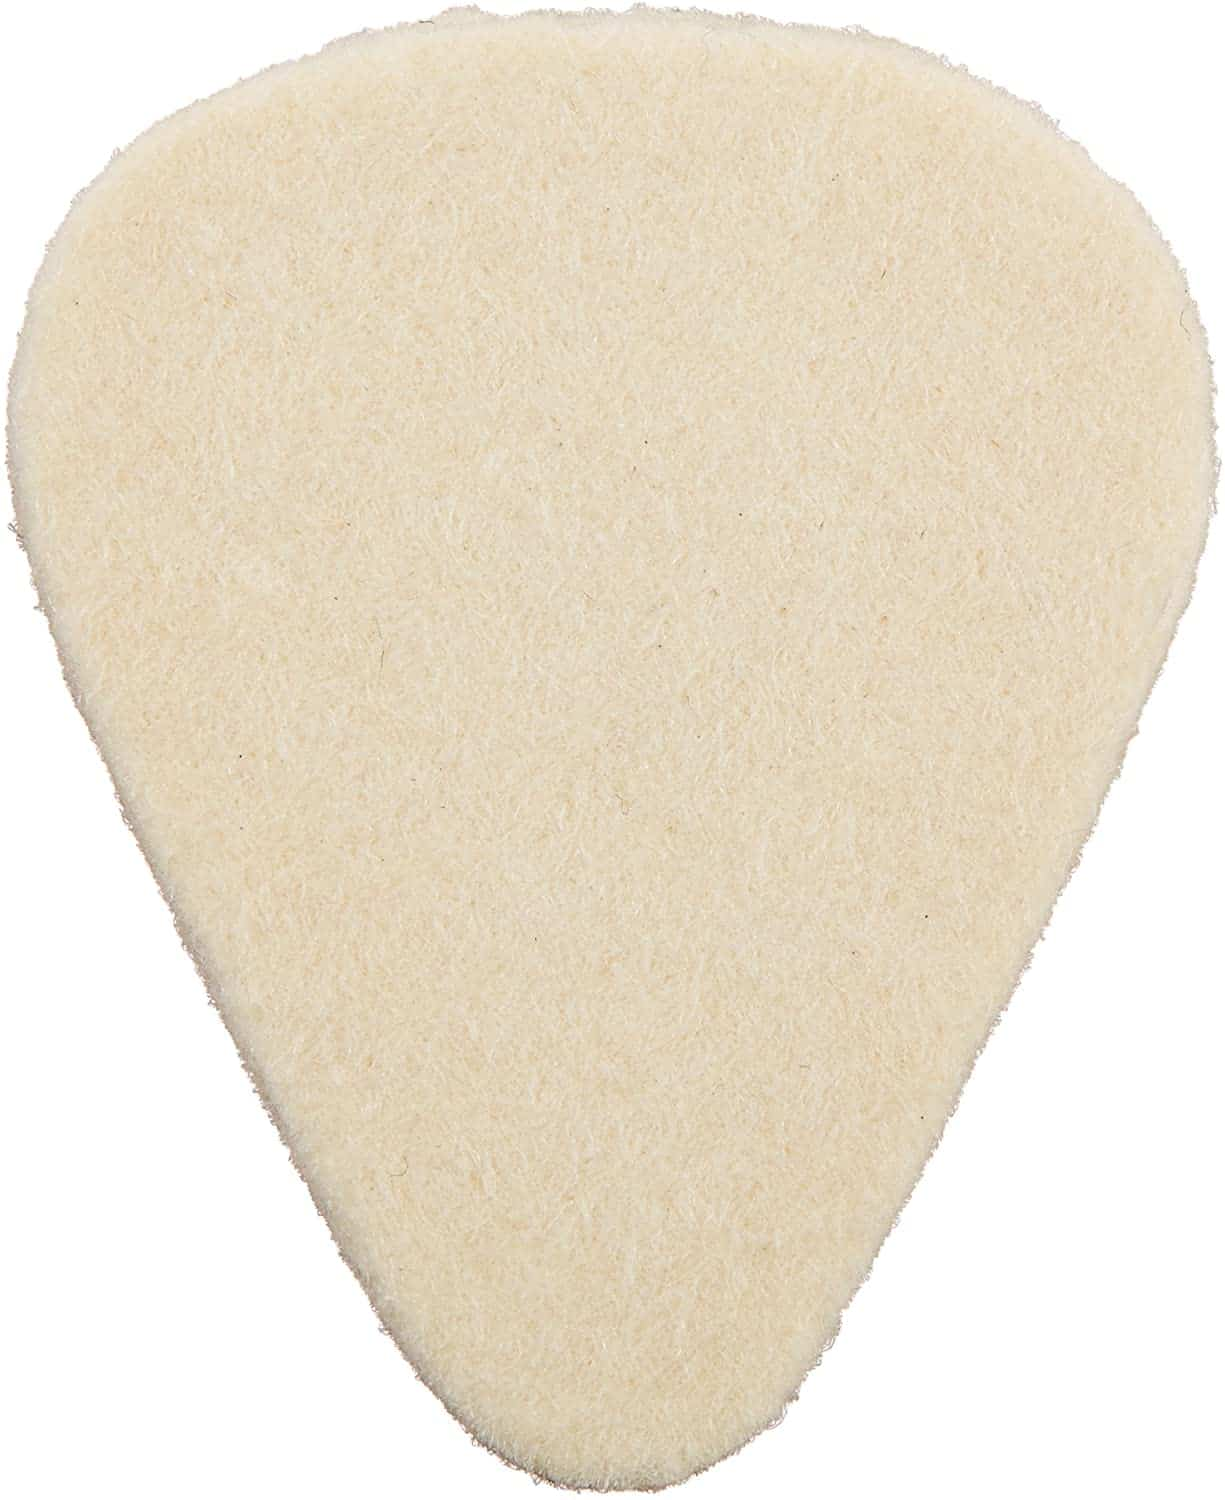 best bass guitar picks